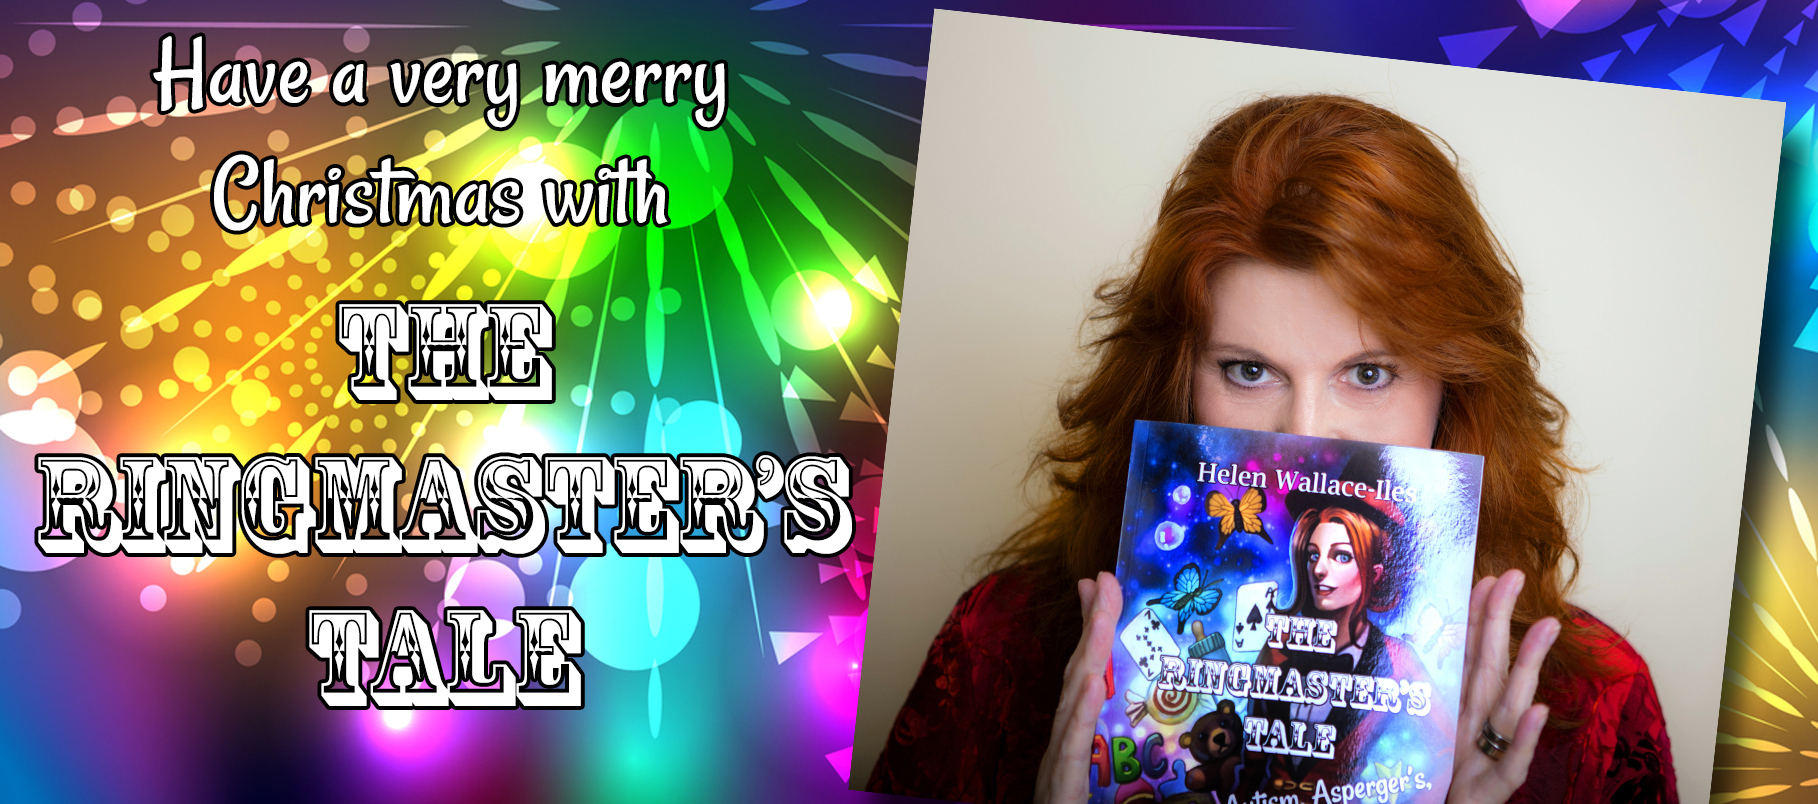 Autism All Stars, Ringmasters Tale, Aspergers, autism, disability, diversity, parenting, special needs, autism awareness, autism acceptance, autism parents, Merry Christmas